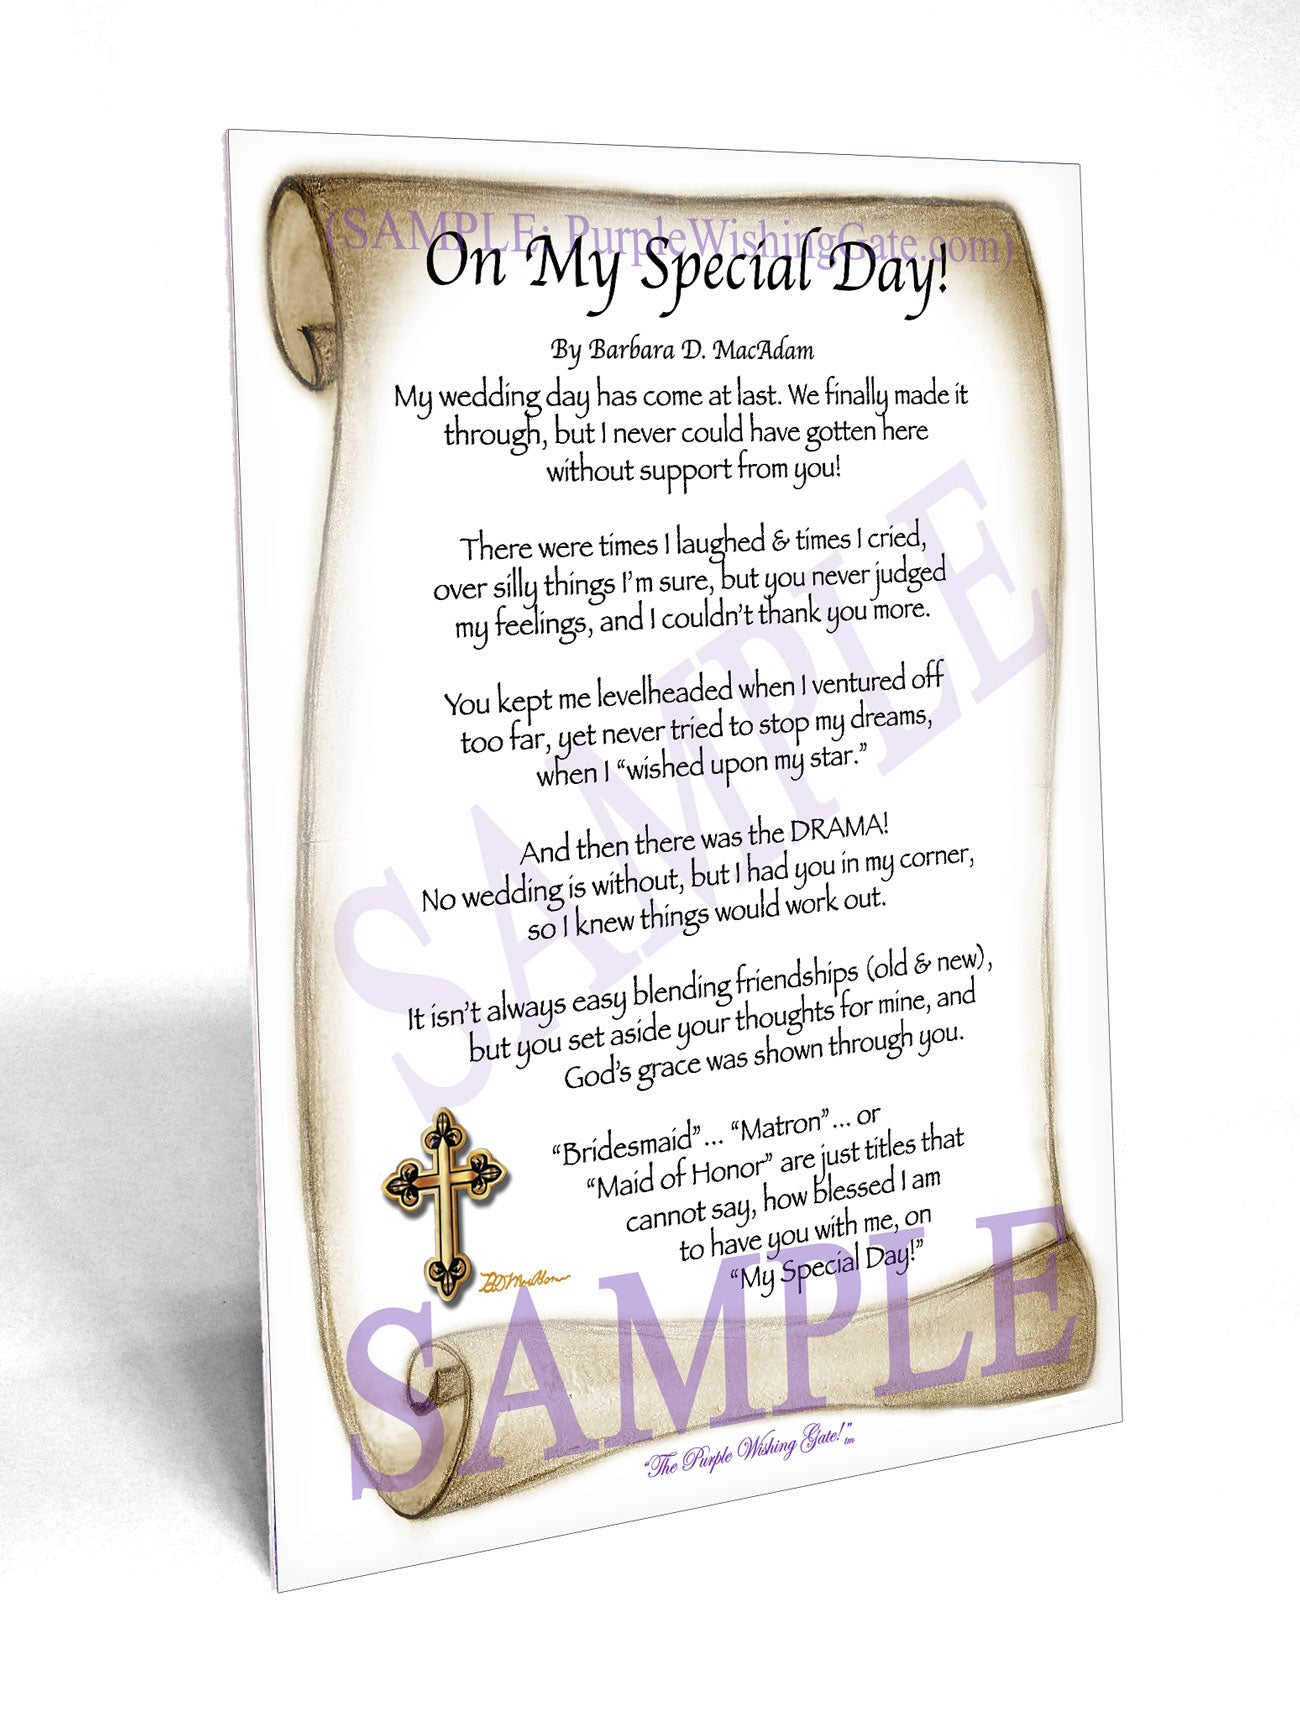 On My Special Day! (bridal party gift) - Wedding Gift - PurpleWishingGate.com